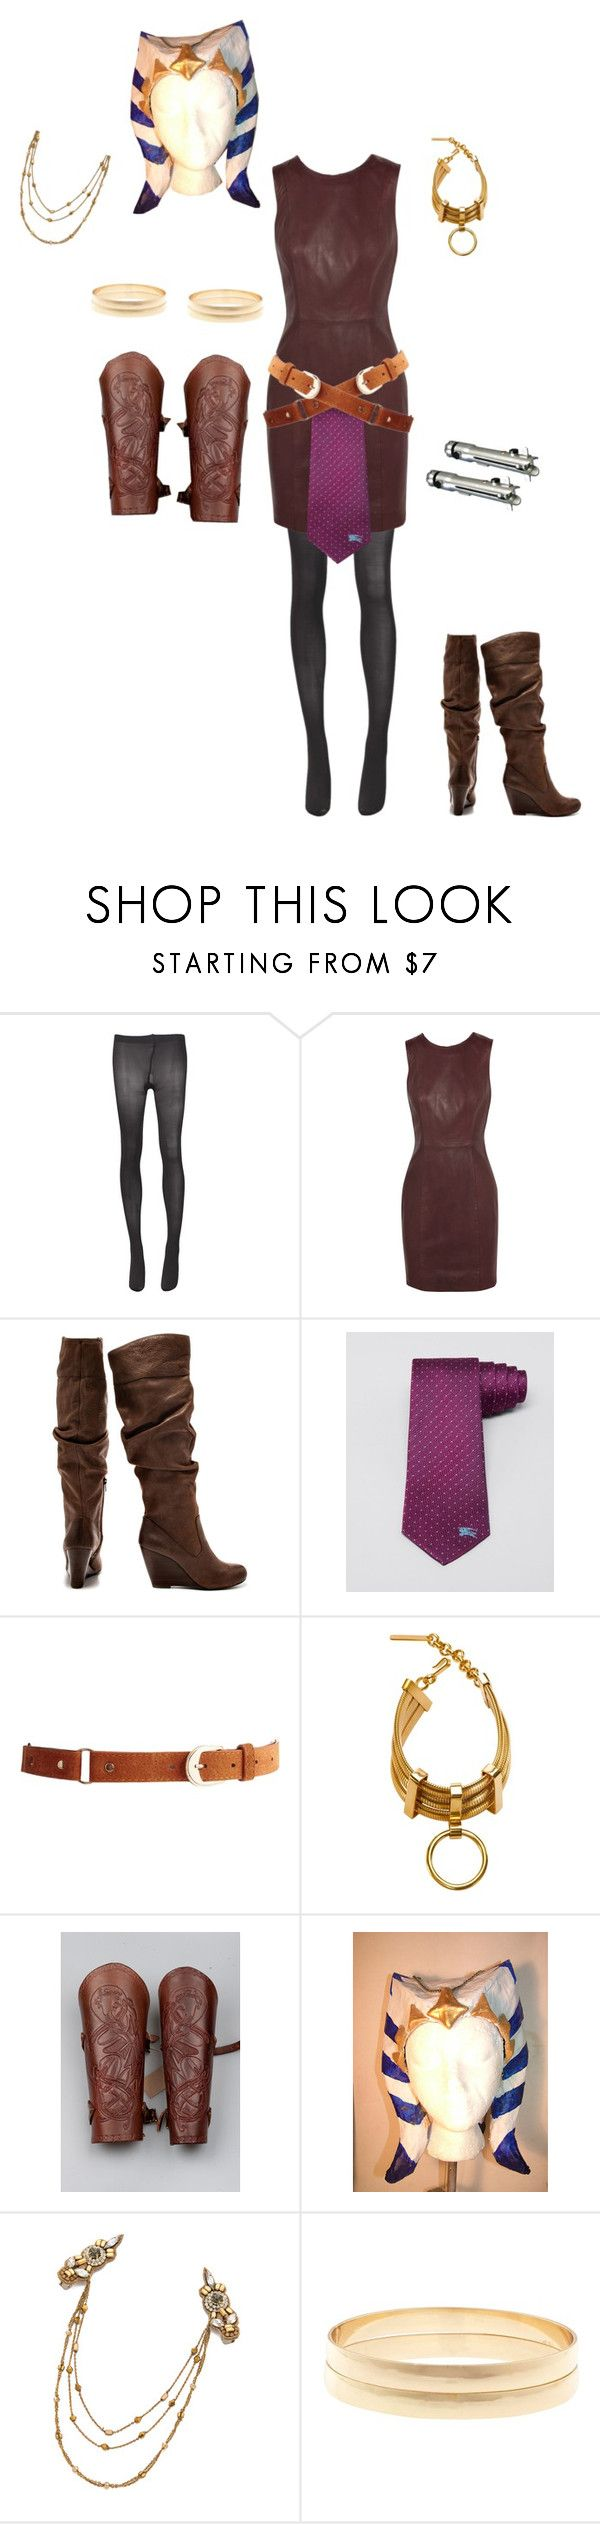 """Ahsoka Tano-Star Wars"" by conquistadorofsorts ❤ liked on Polyvore featuring Sofie D'hoore, MuuBaa, Jessica Simpson, Burberry, MINKPINK, Scott Wilson, Tano, Deepa Gurnani and River Island"